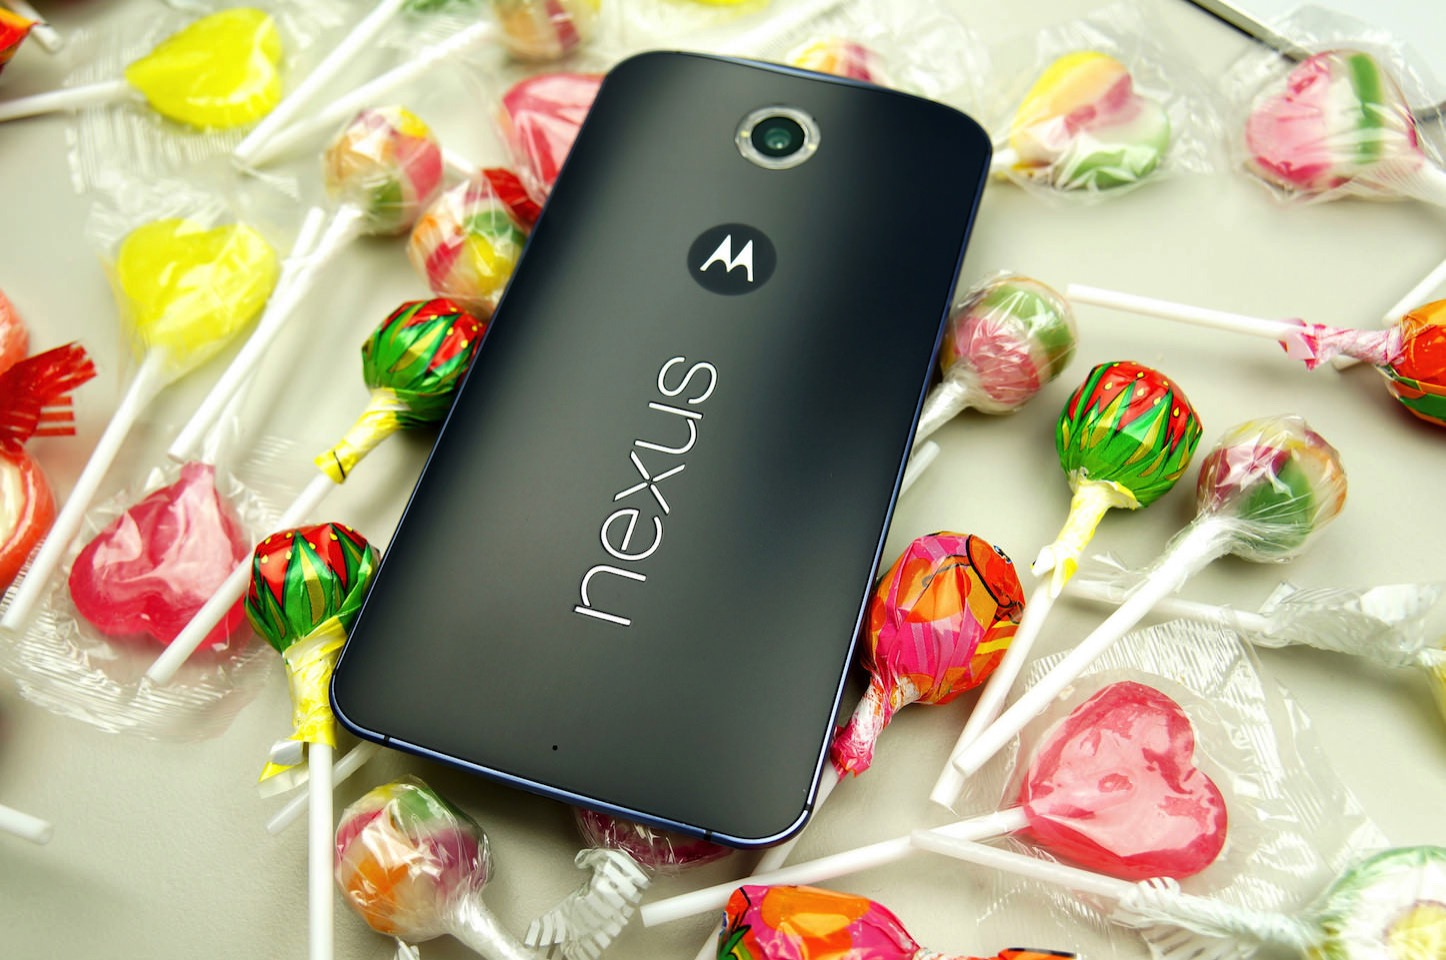 Nexus Smartphone Lollipops